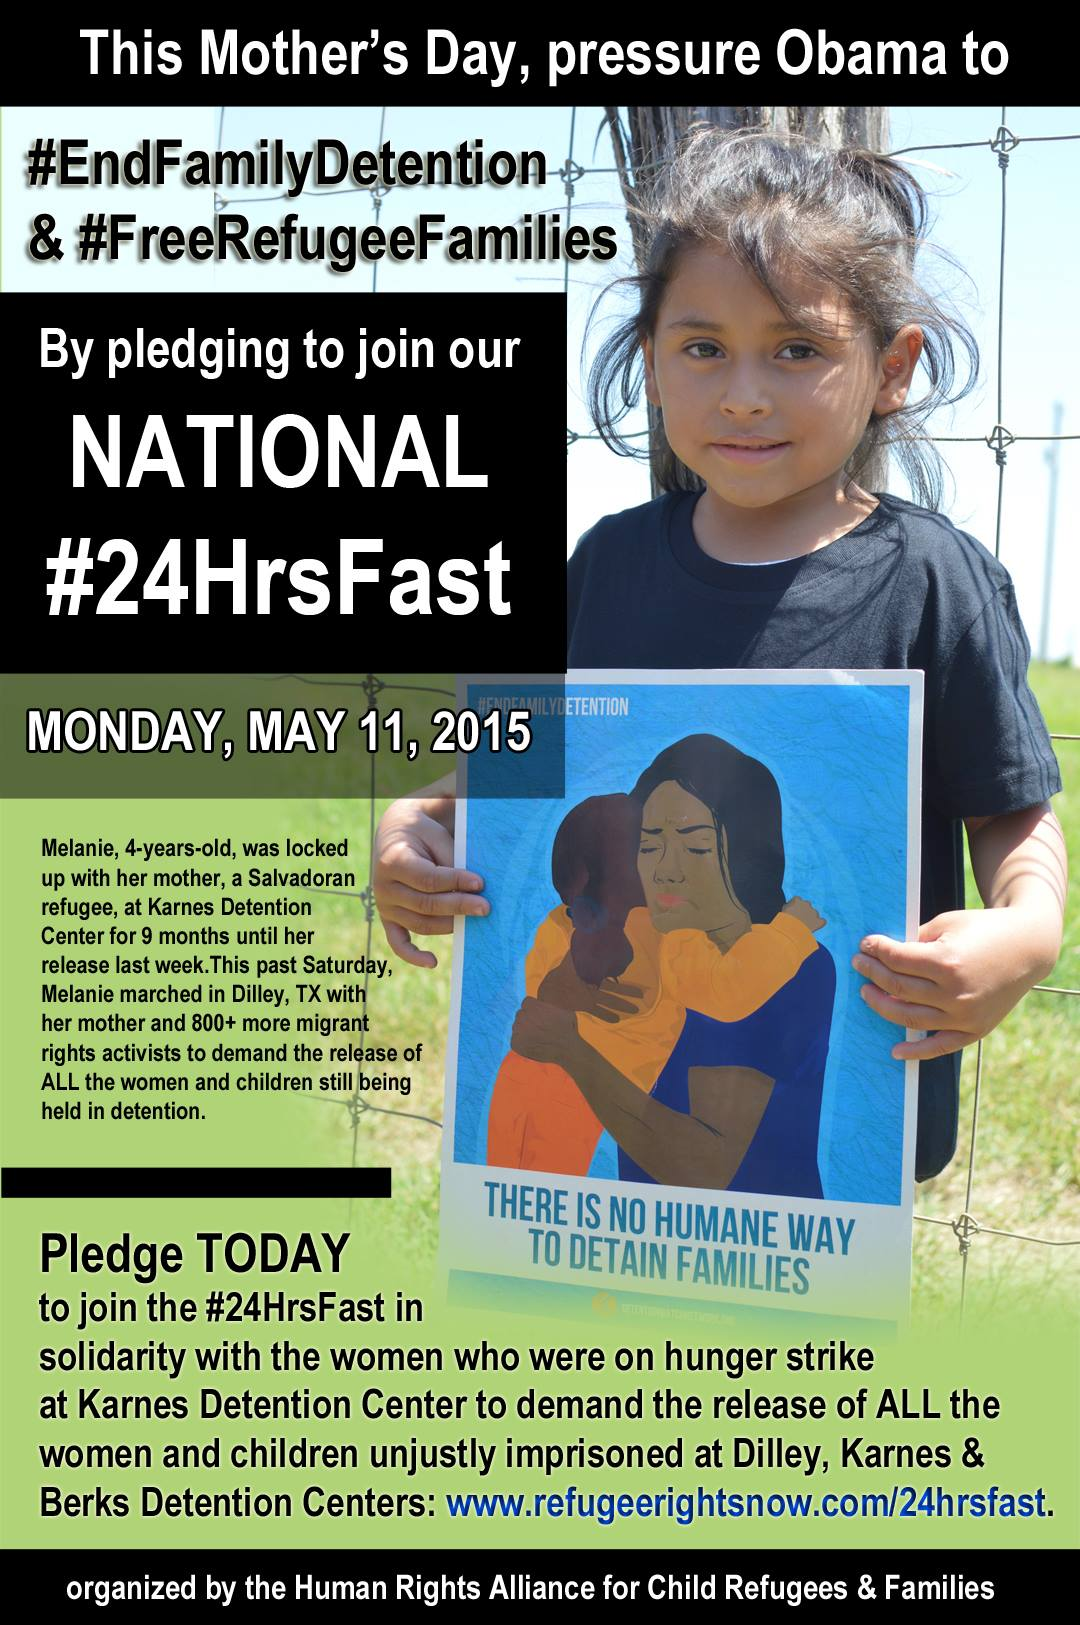 National_Mothers_Day_Action-May_11_2015_Flyer-EndFamilyDetention.jpg